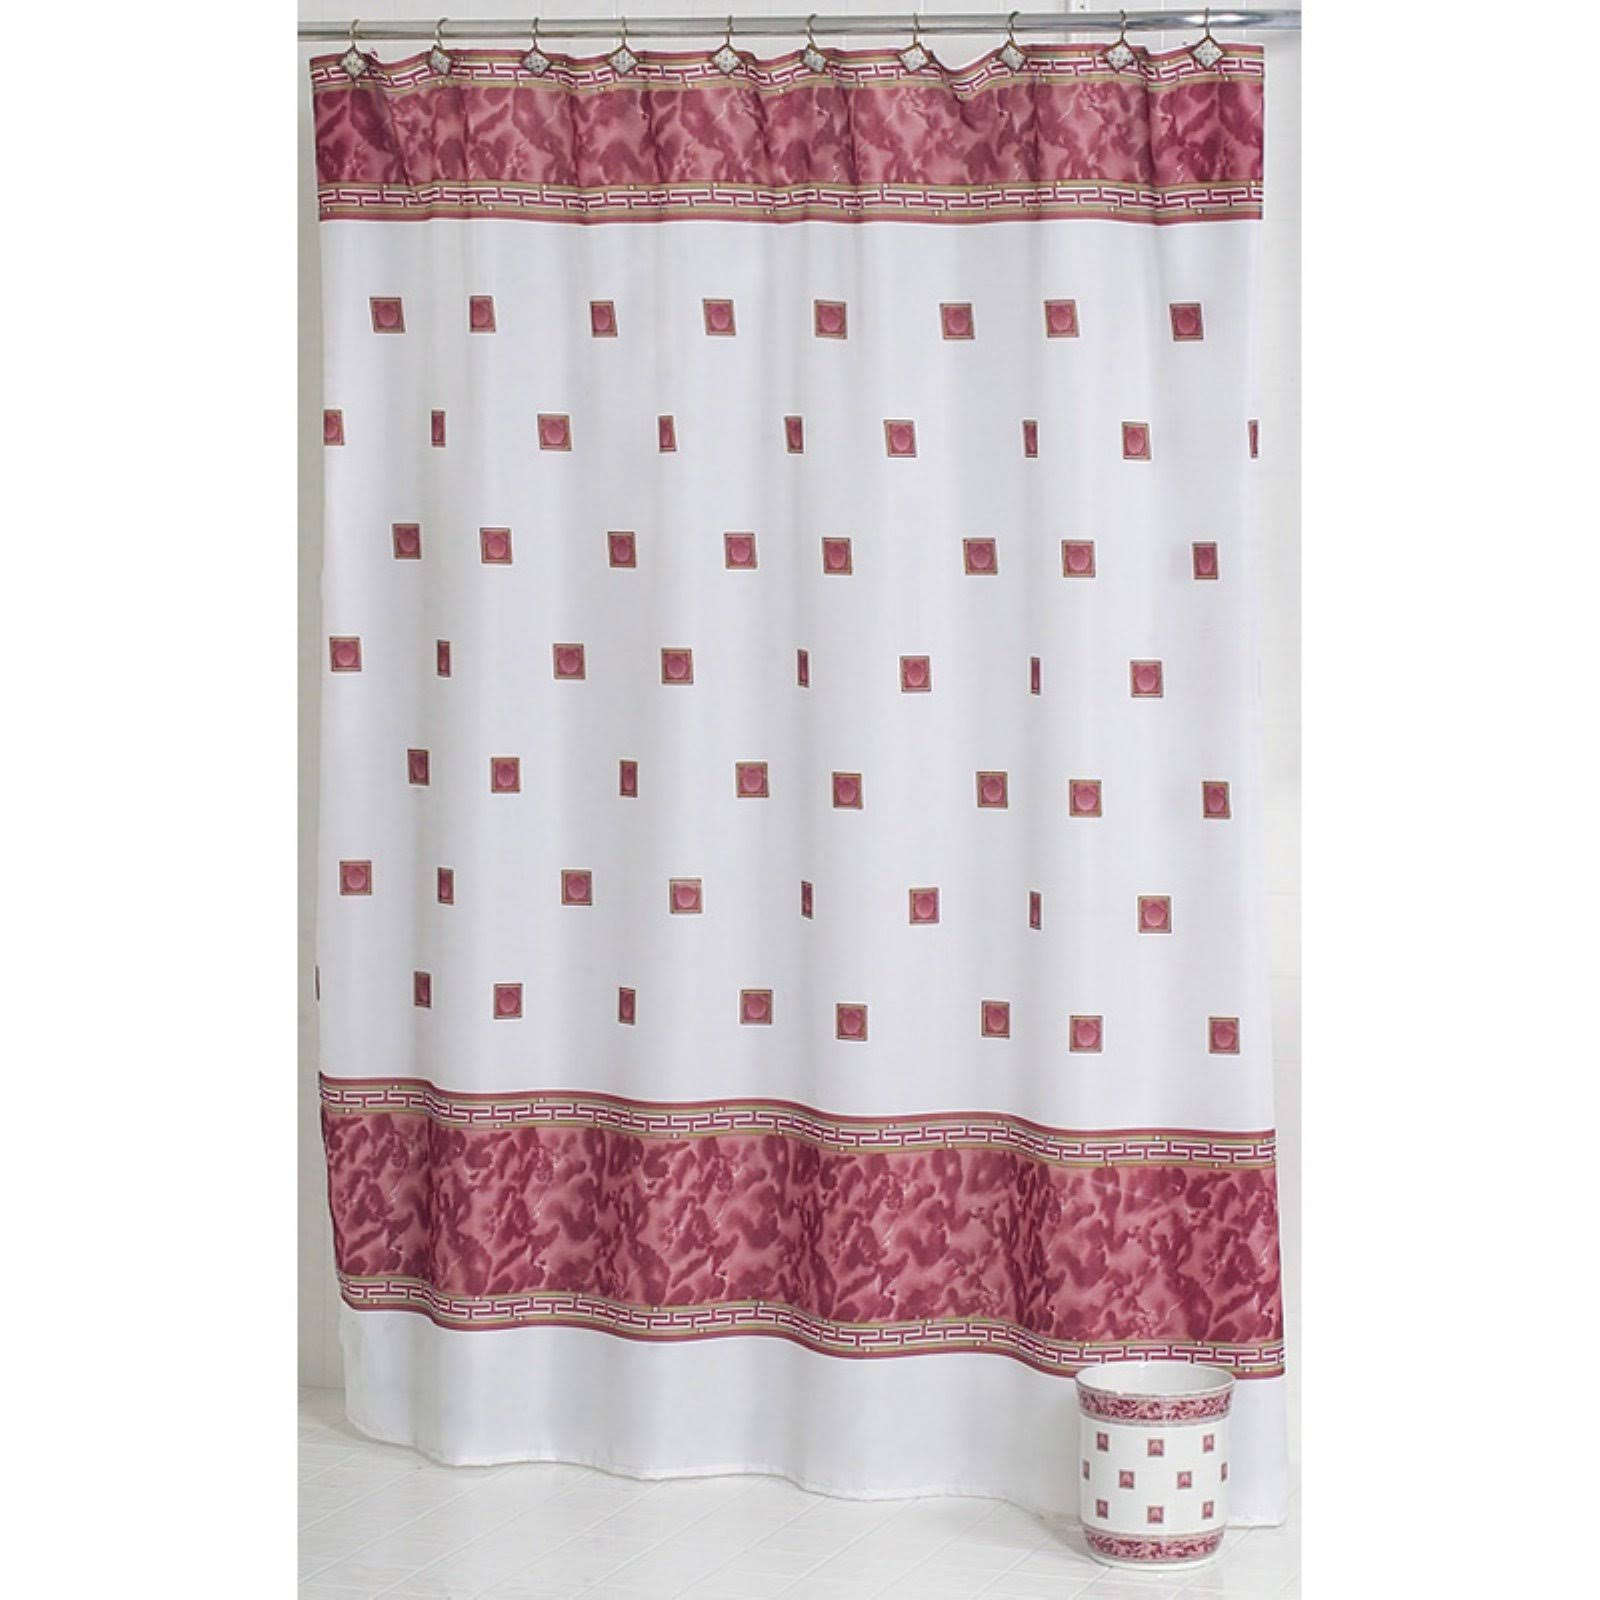 Carnation Home Fashions Windsor Fabric Shower Curtain in Burgundy